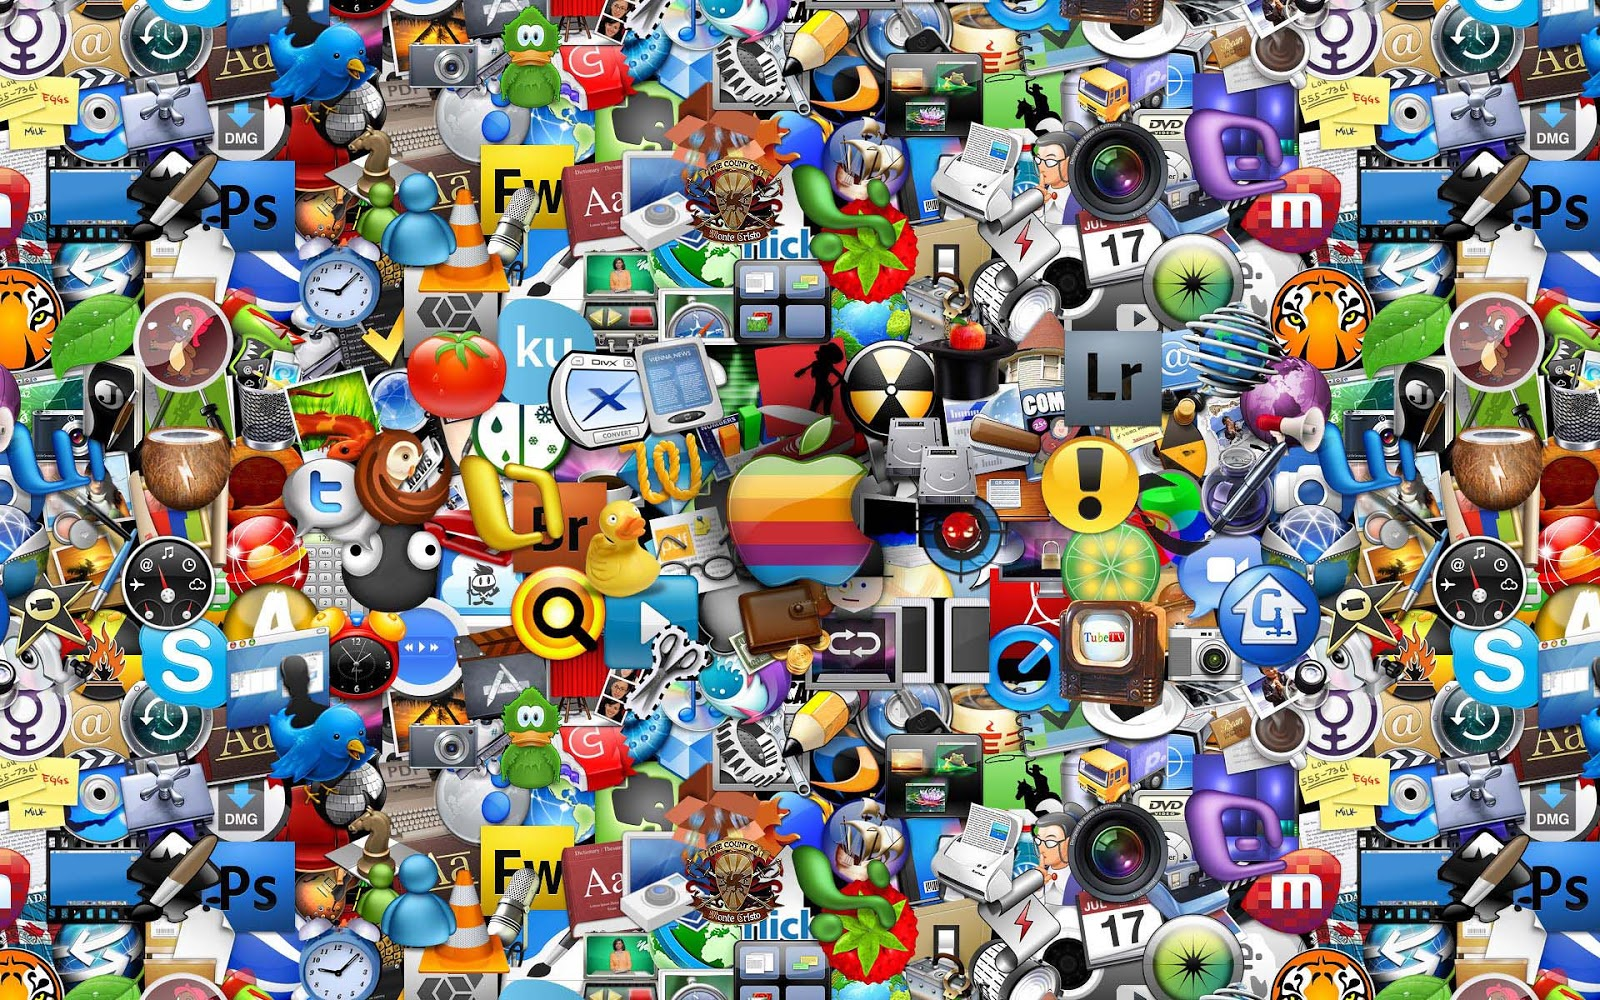 Apps Windows Phone Apps Google Play App Store foto wallpaper 1600x1000